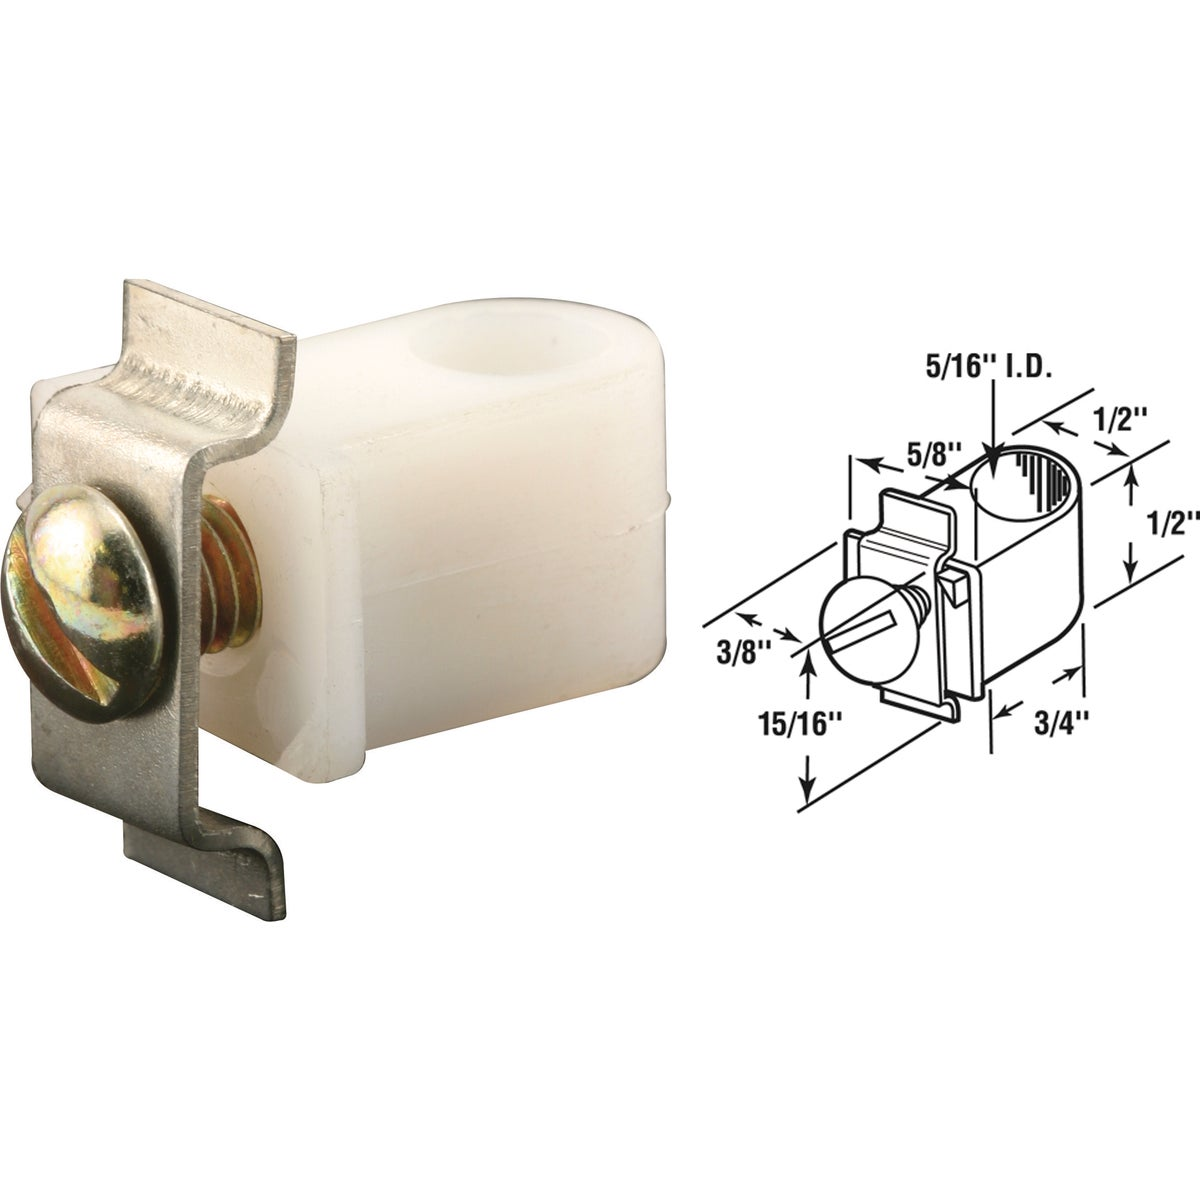 BI-FOLD DOOR CLAMP - 16855 by Prime Line Products